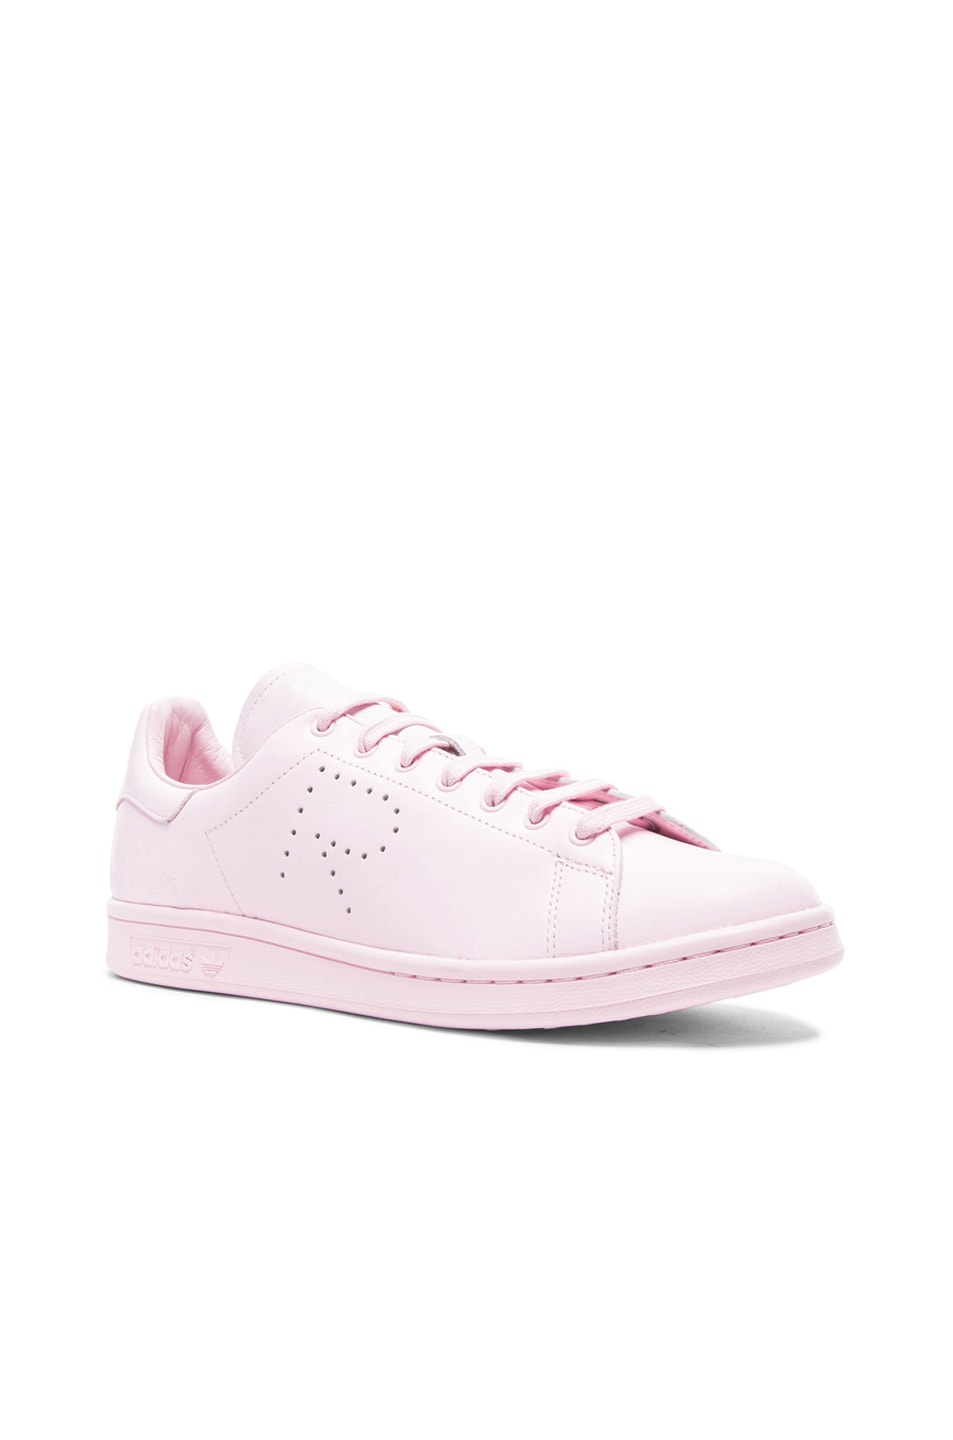 adidas raf simons stan smith clear pink